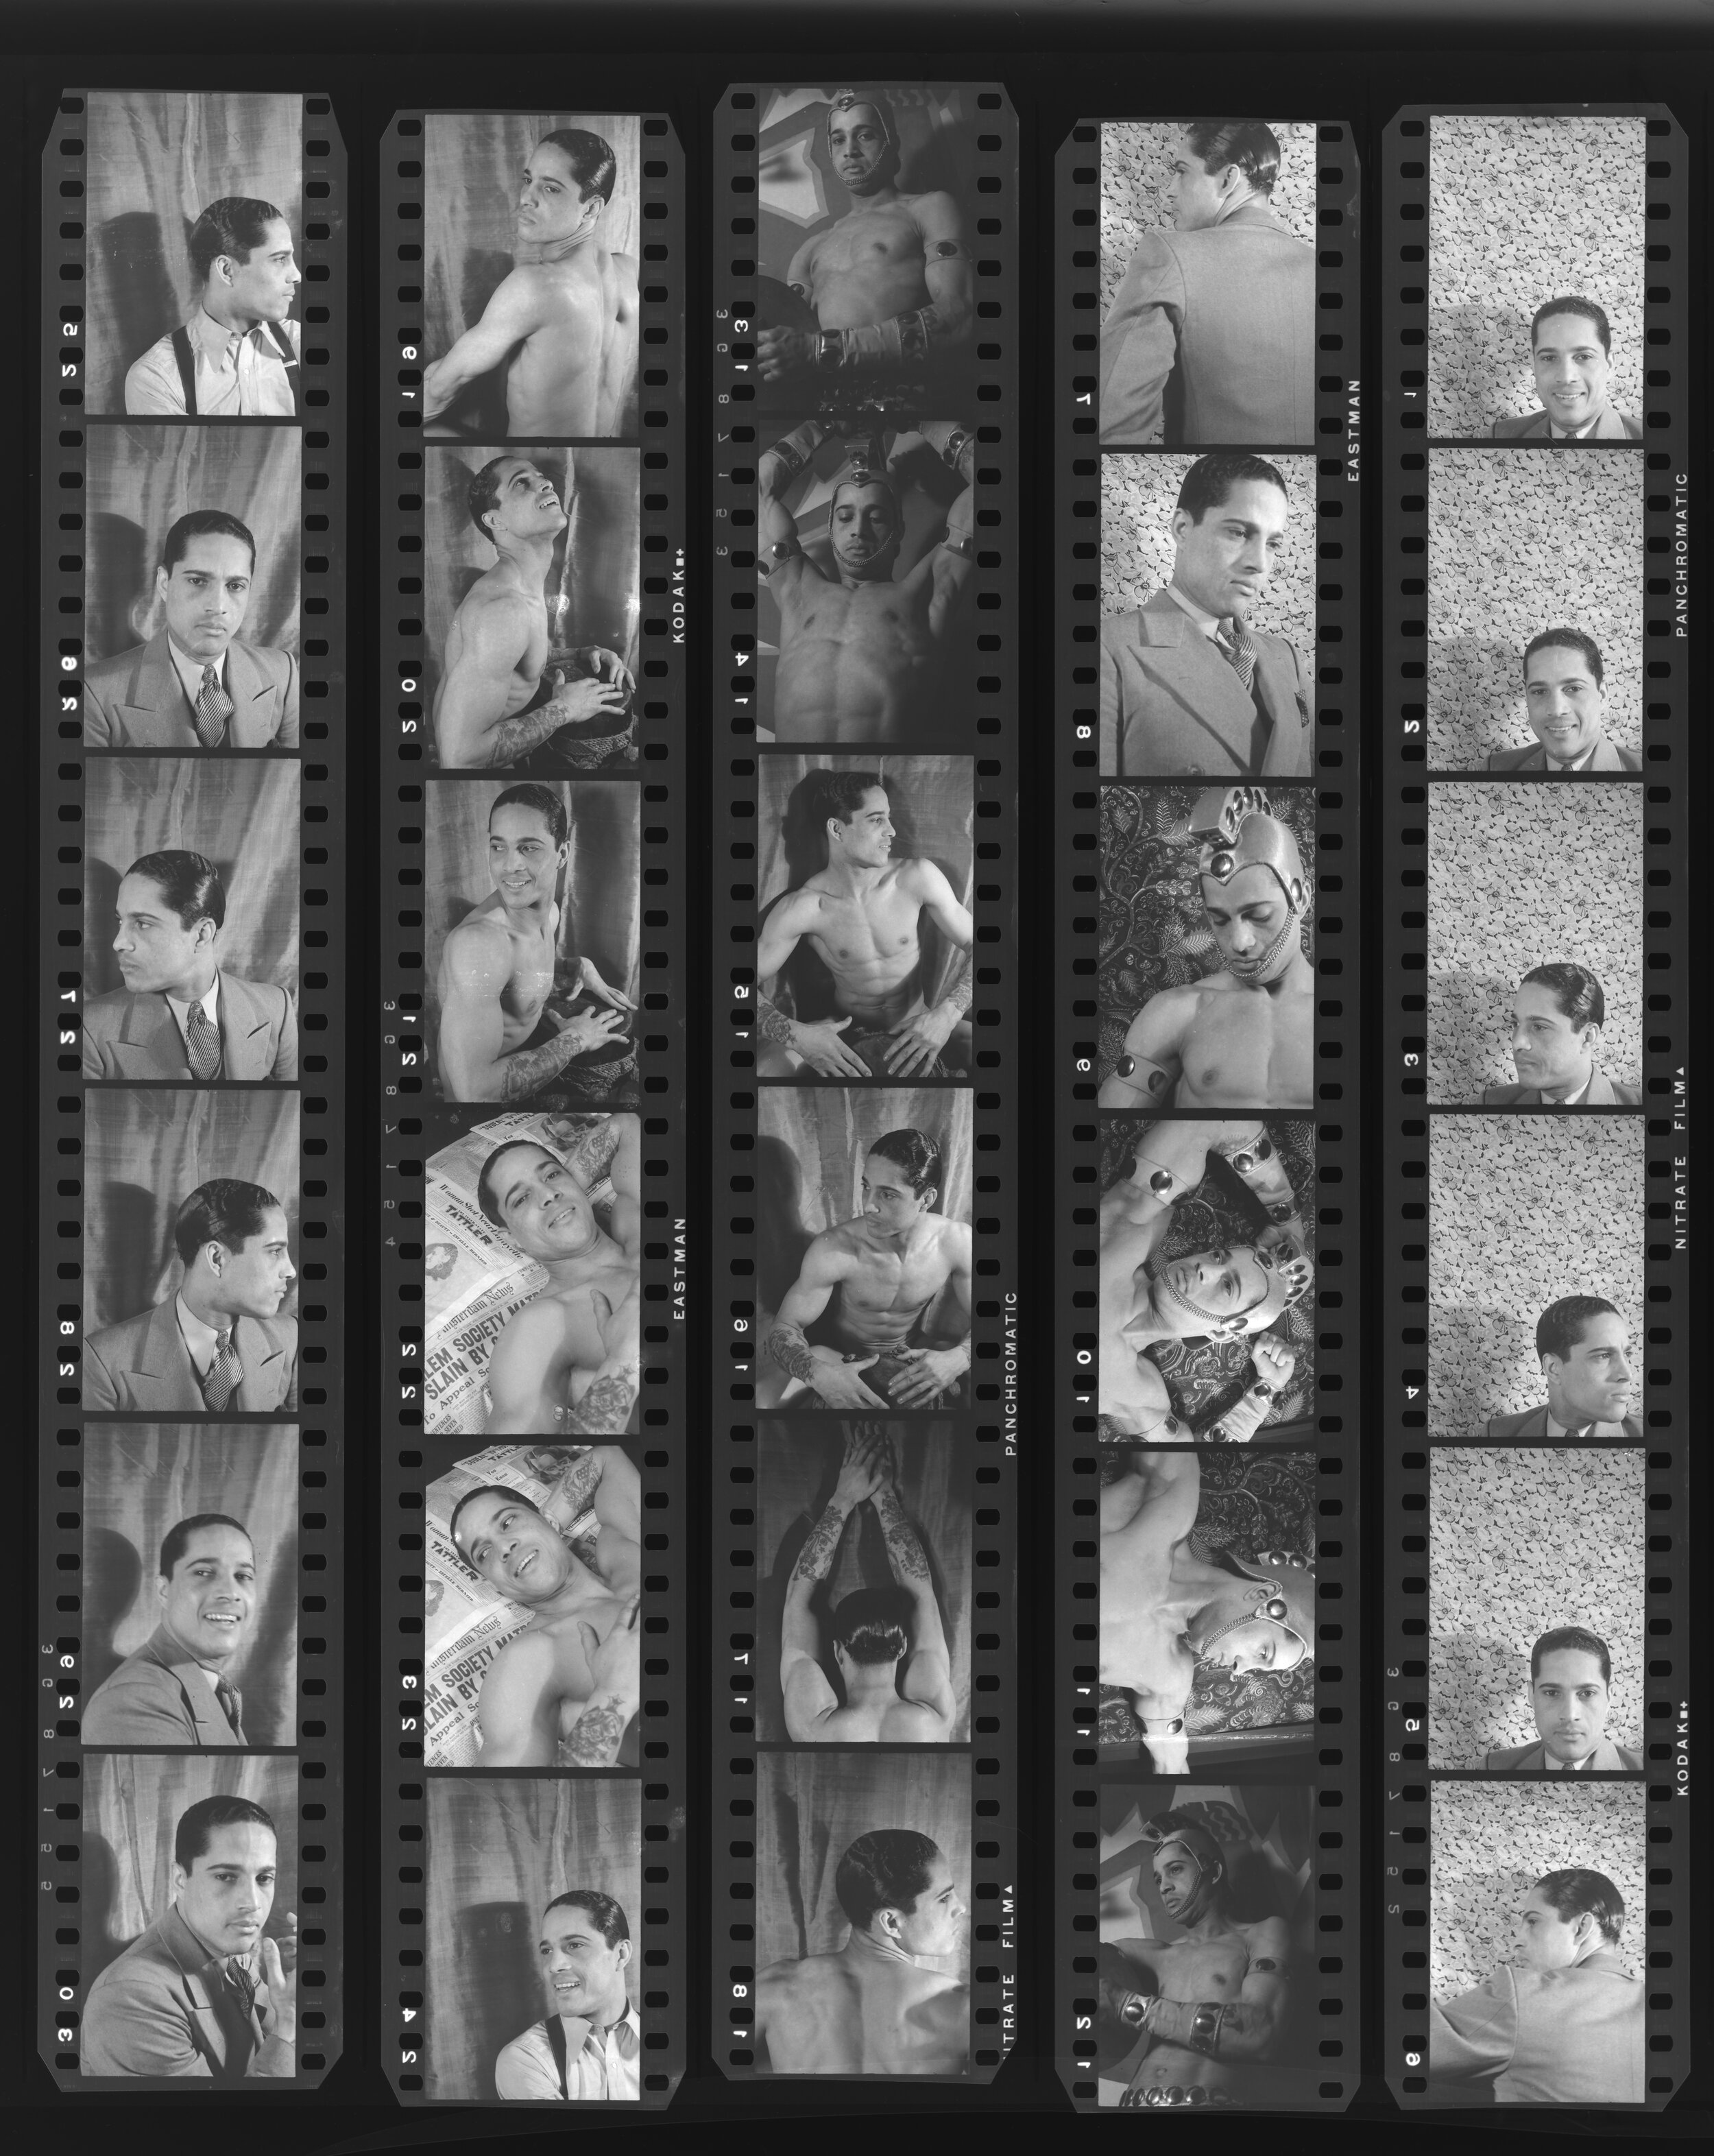 Figure 3. Carl Van Vechten,  Contact sheet of portraits of Paul Meeres, April 1, 1932 . Courtesy: Beinecke Rare Book and Manuscript Library, Yale University, by permission of the Carl Van Vechten Trust.